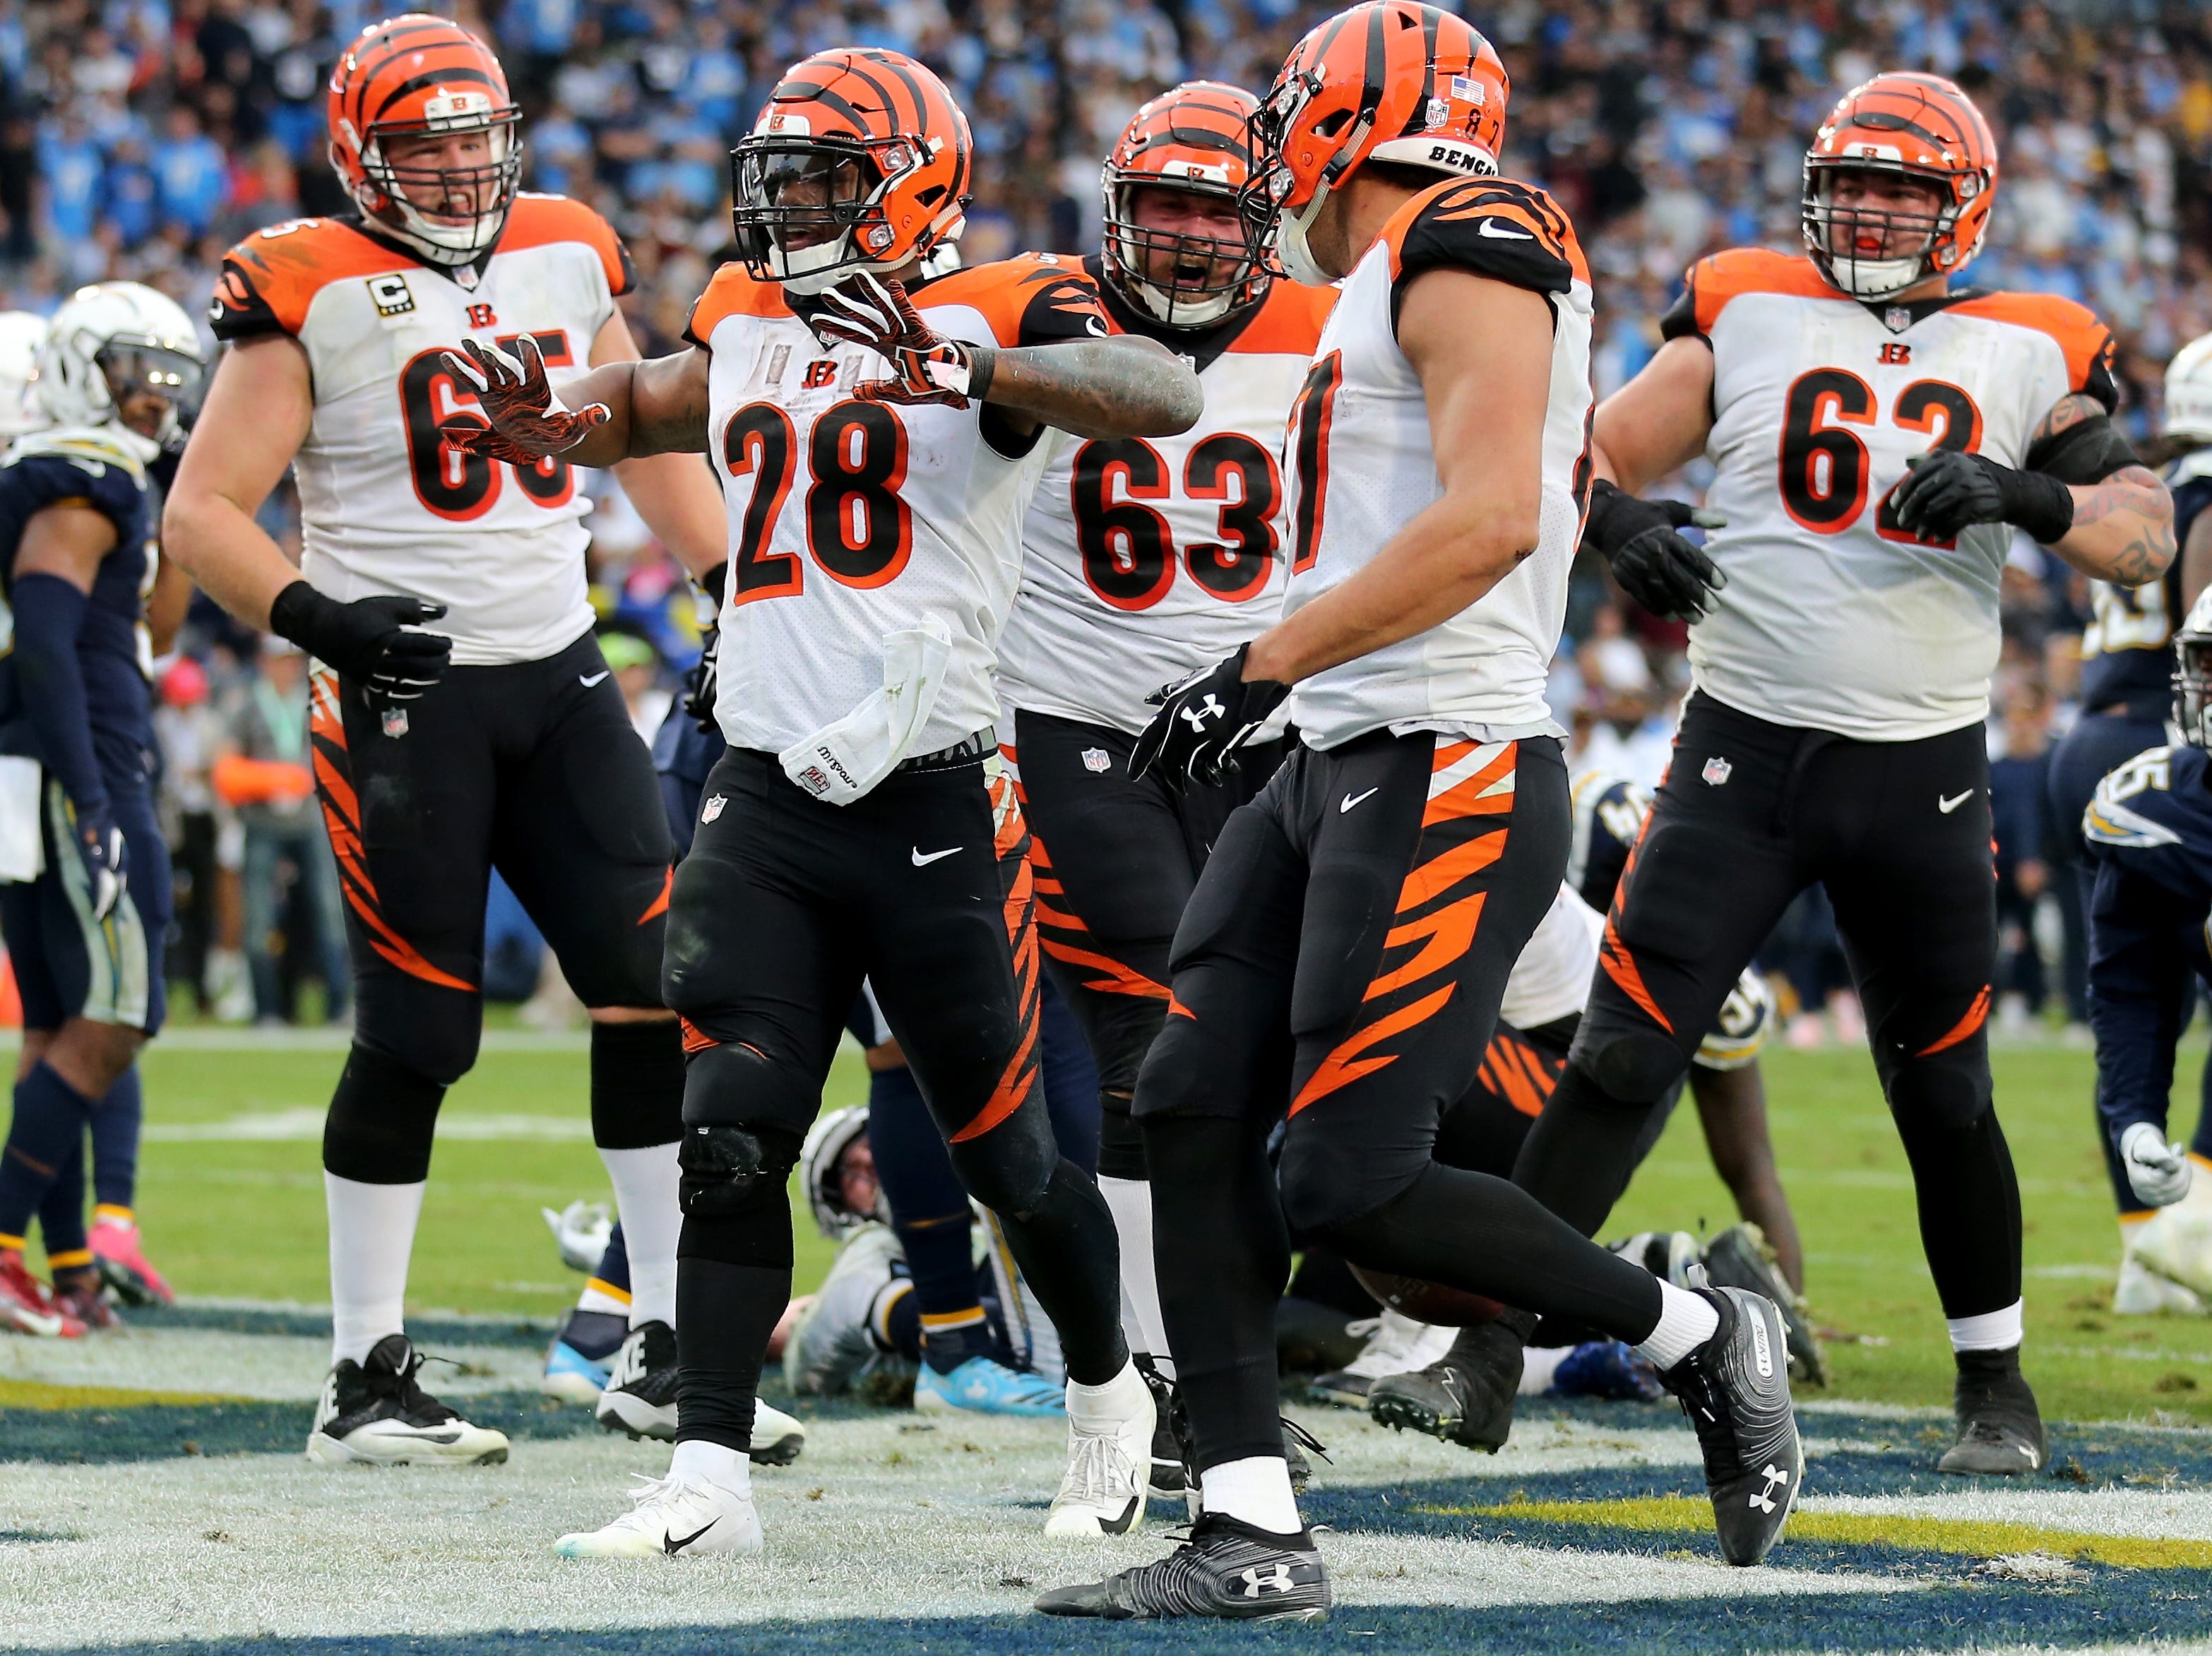 Cincinnati Bengals running back Joe Mixon (28) celebrated a touchdown run in the fourth quarter of a Week 14 NFL football game against the Los Angeles Chargers, Sunday, Dec. 9, 2018, at StubHub Center in Carson, California. The Los Angeles Chargers won 26.21.